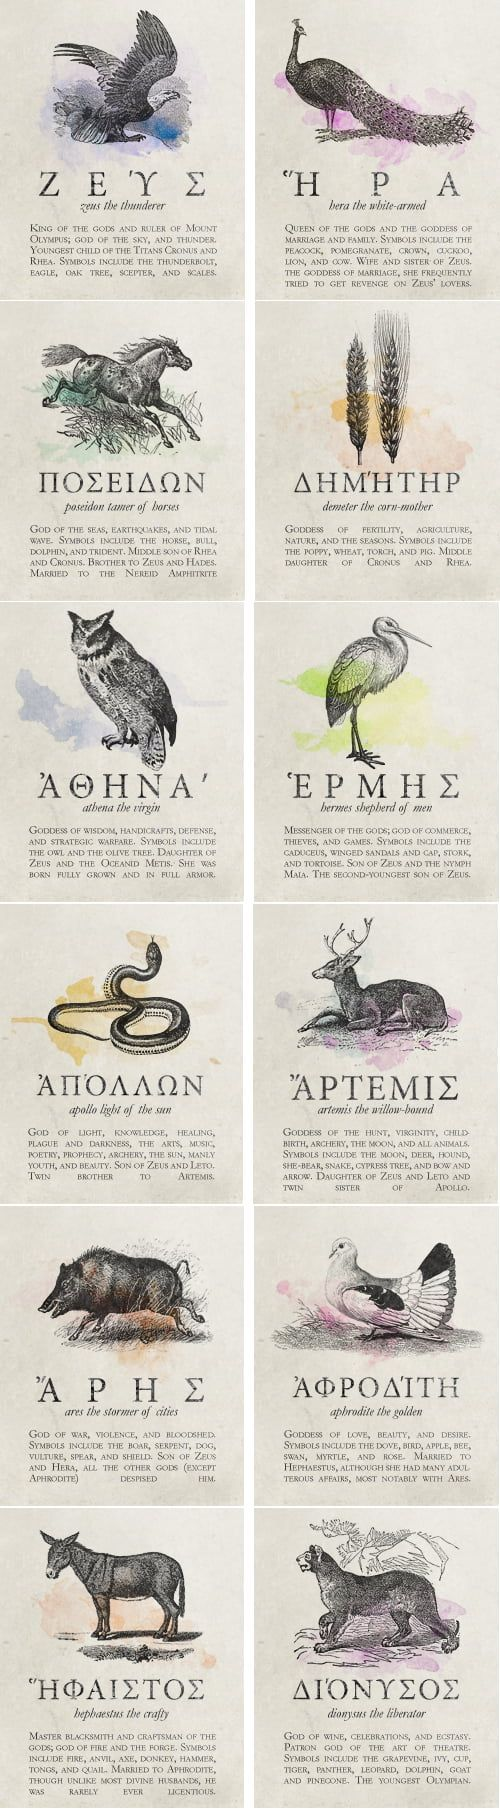 Favorite animals of famous Greek Gods.